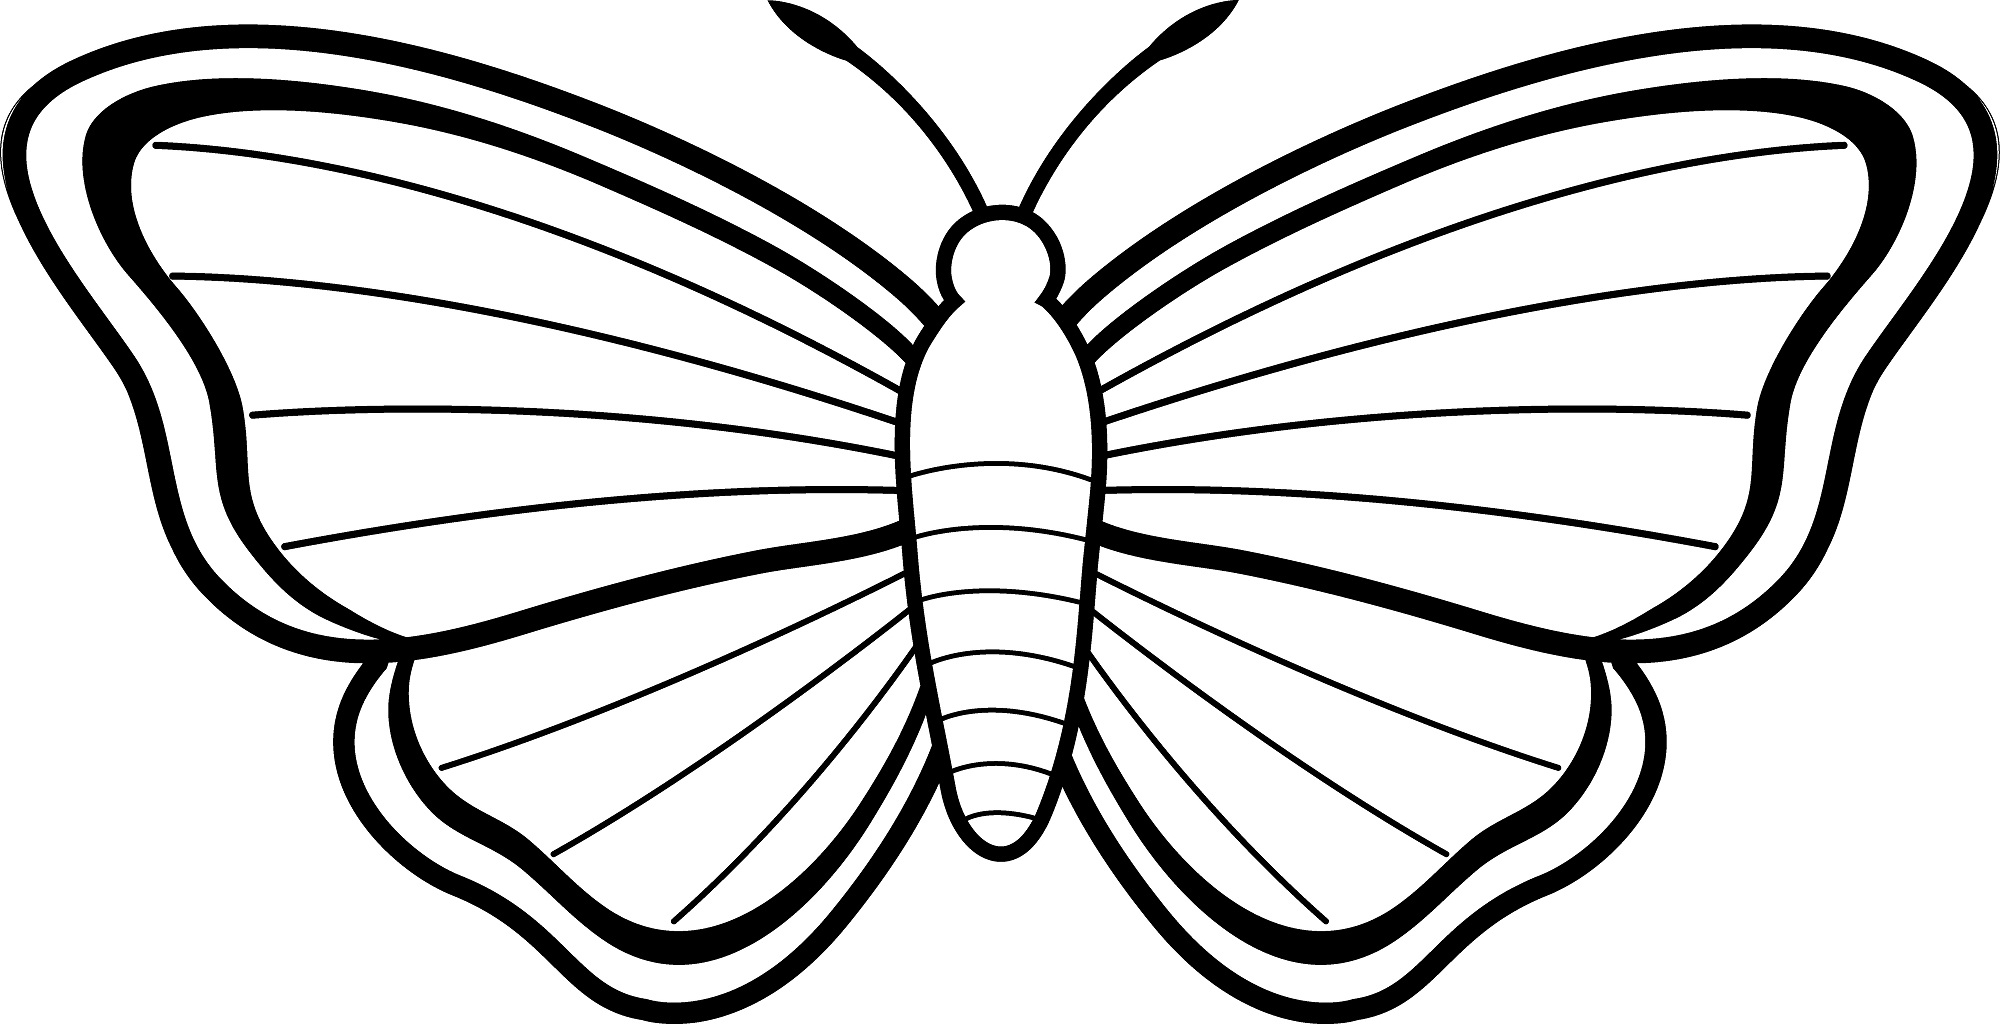 Action Beauty Coloring Pages Of Butterfly Images cute free printable butterfly coloring pages for kids images